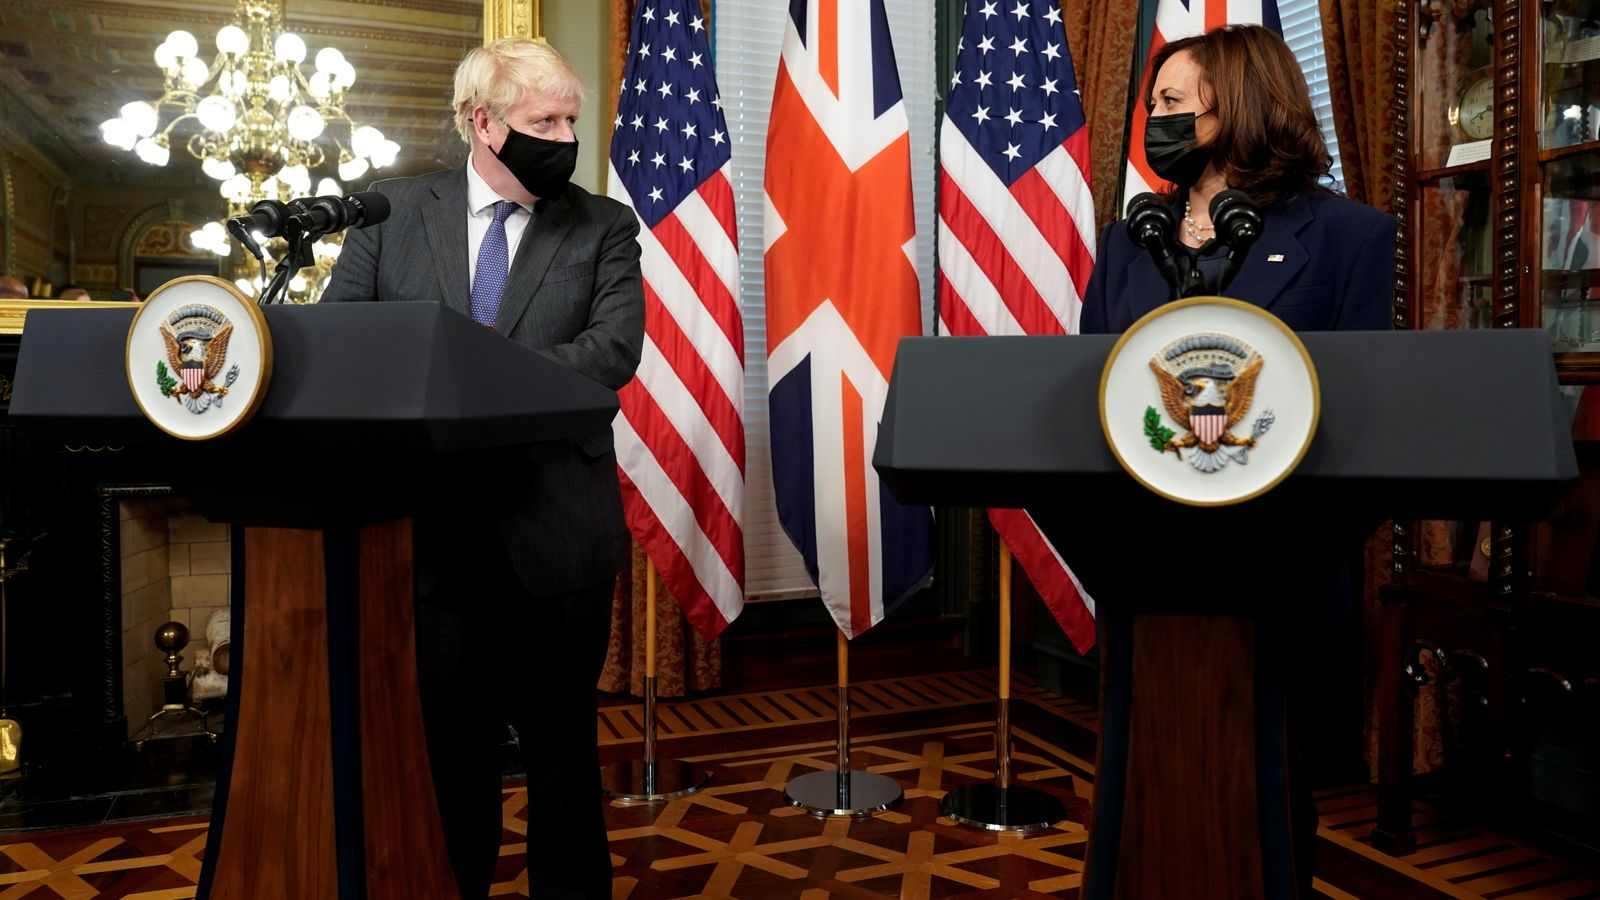 Boris Johnson hails 'real progress' in US-UK trade during White House talks - despite failing to commit to deal by 2024